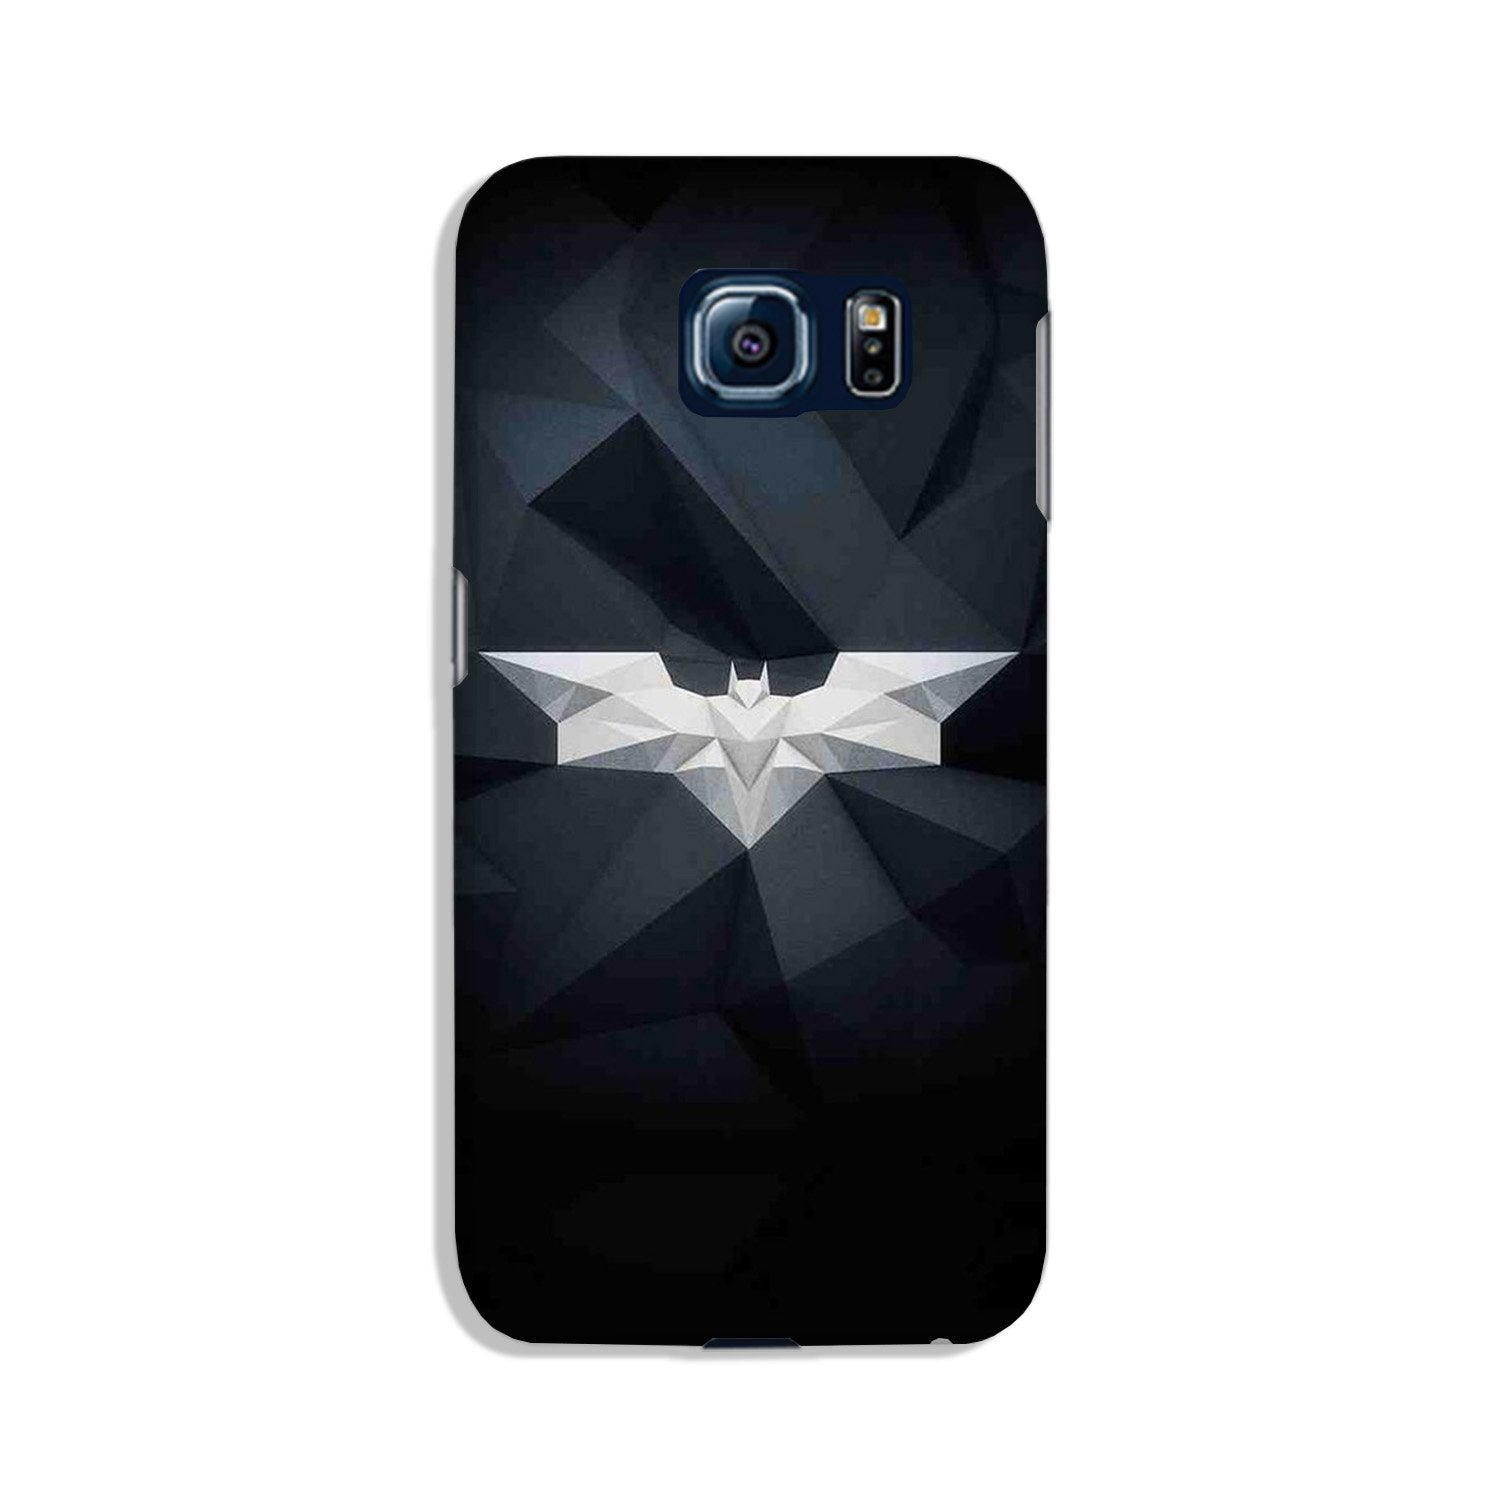 Batman Case for Galaxy S6